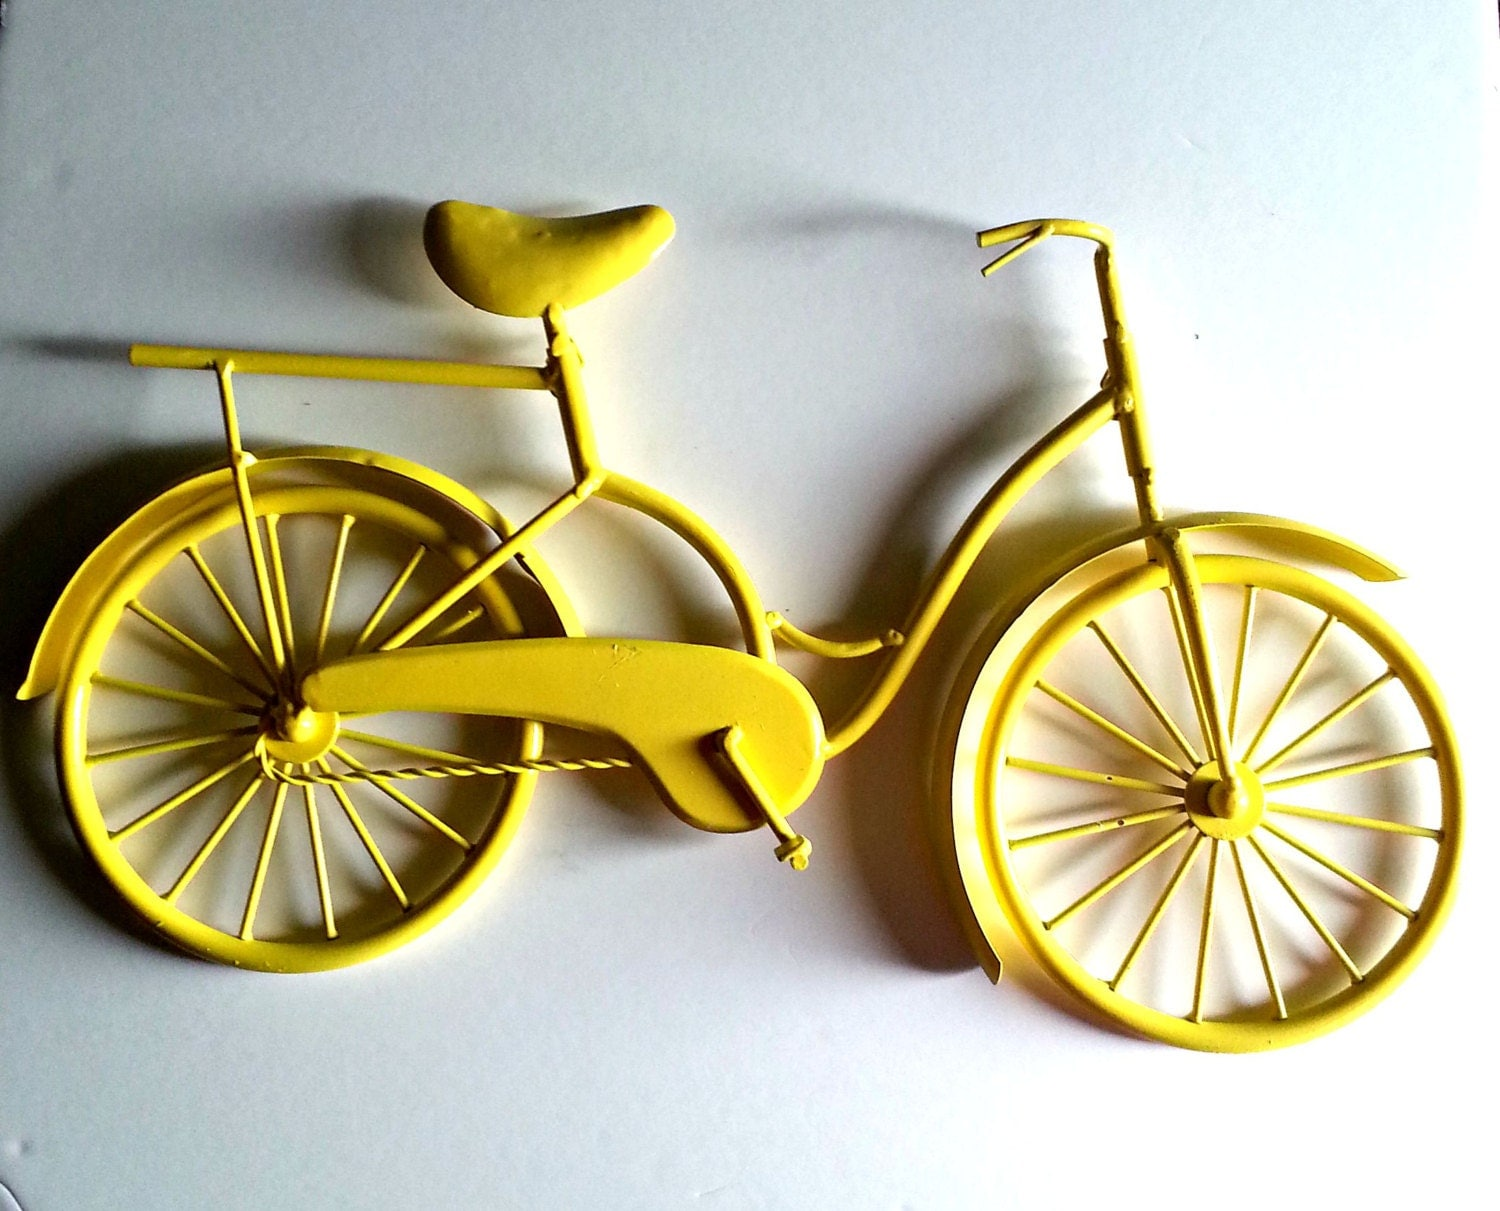 Metal Wall Decor Bicycle : Bicycle wall art yellow decor metal by